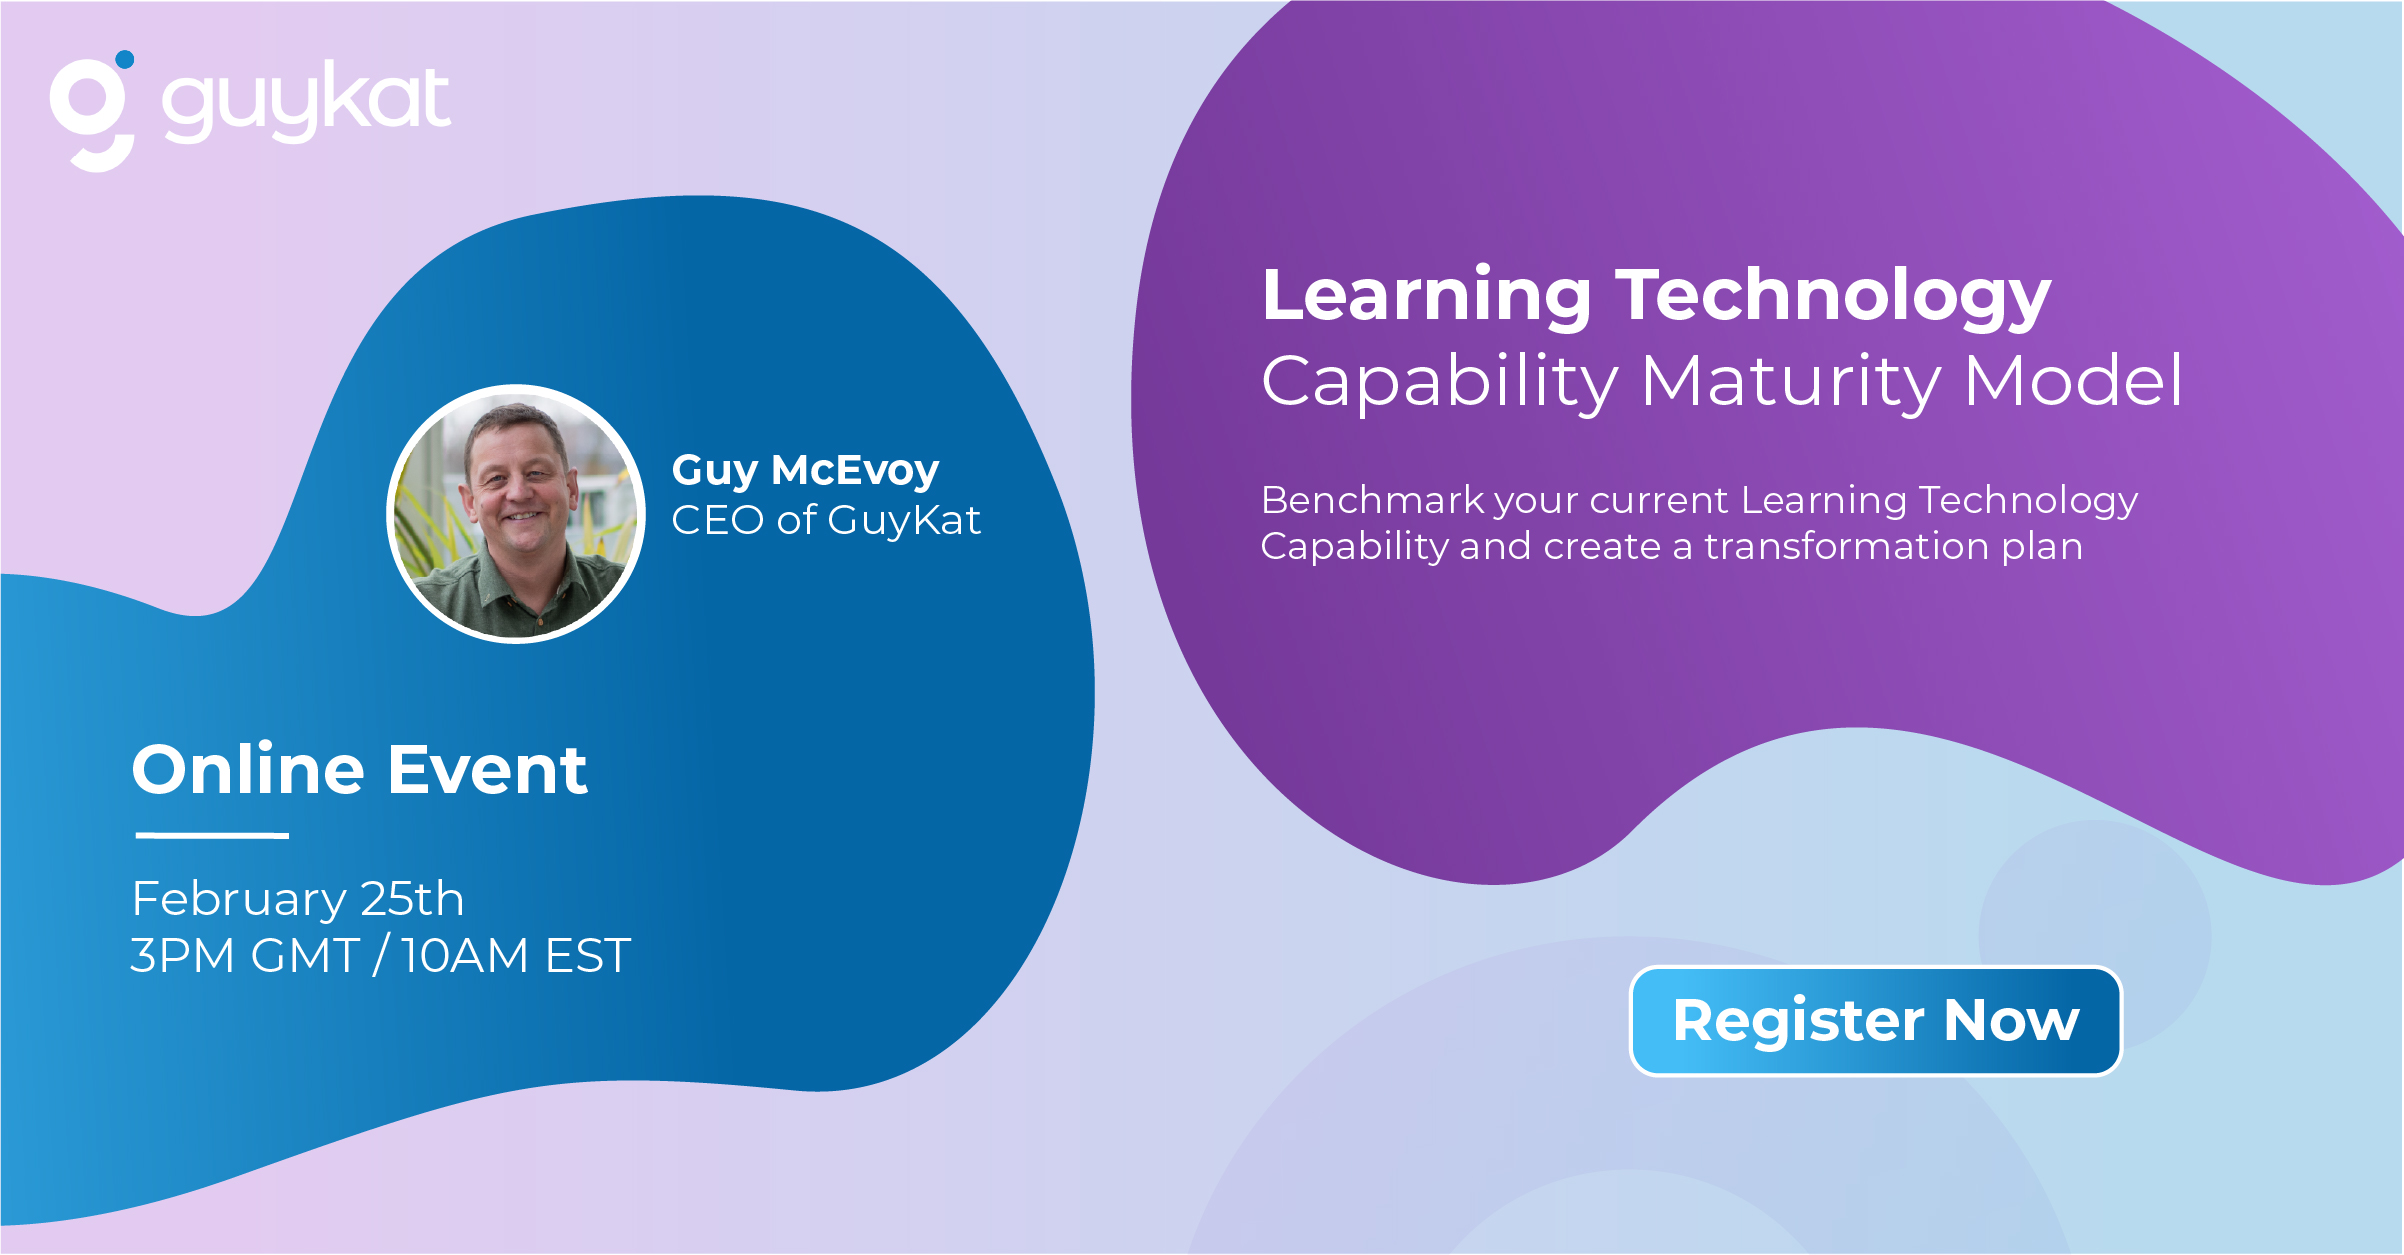 https://www.guykat.com/learning-technology-capability-event/